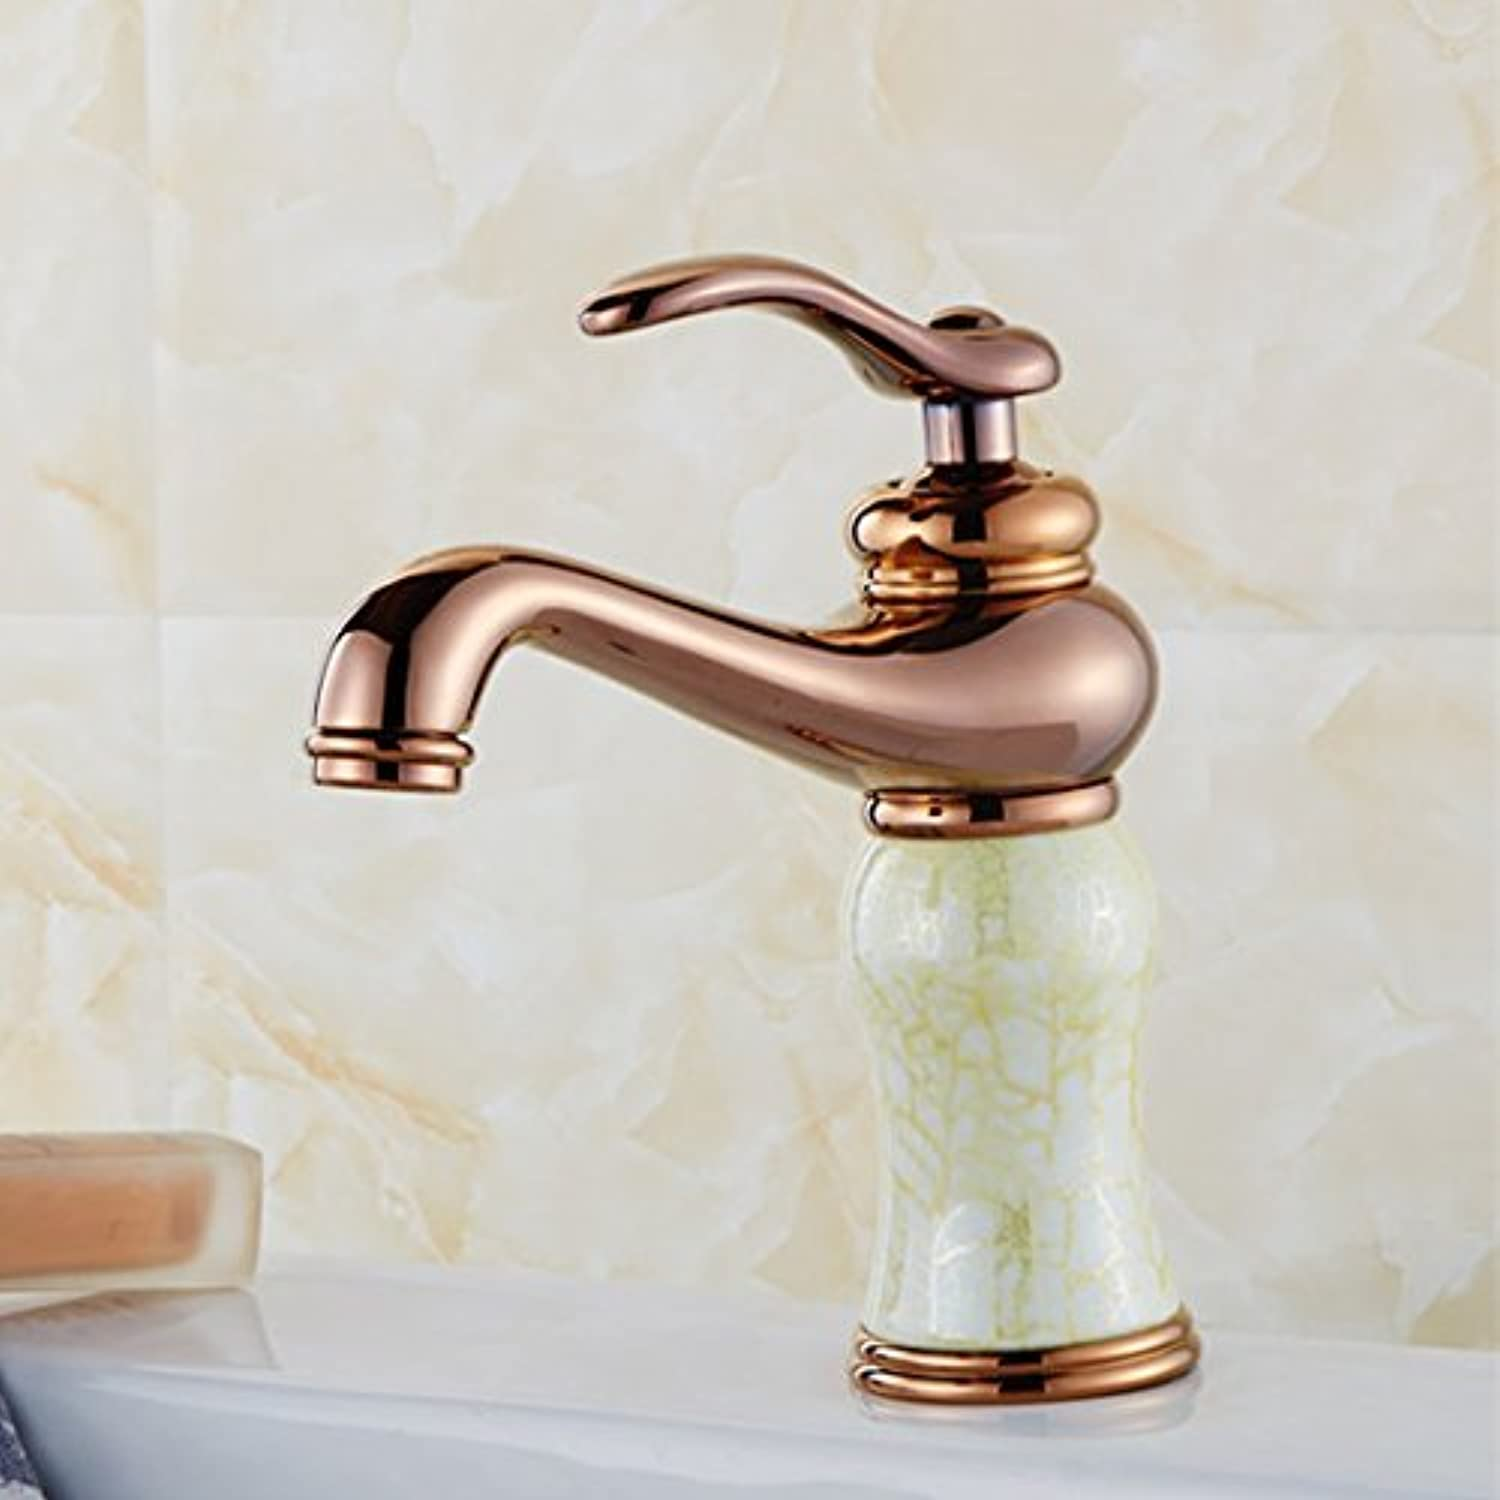 The Water in Rigid Brass with Bronze d Gluing Bath Rooms Sinks taps tap, F